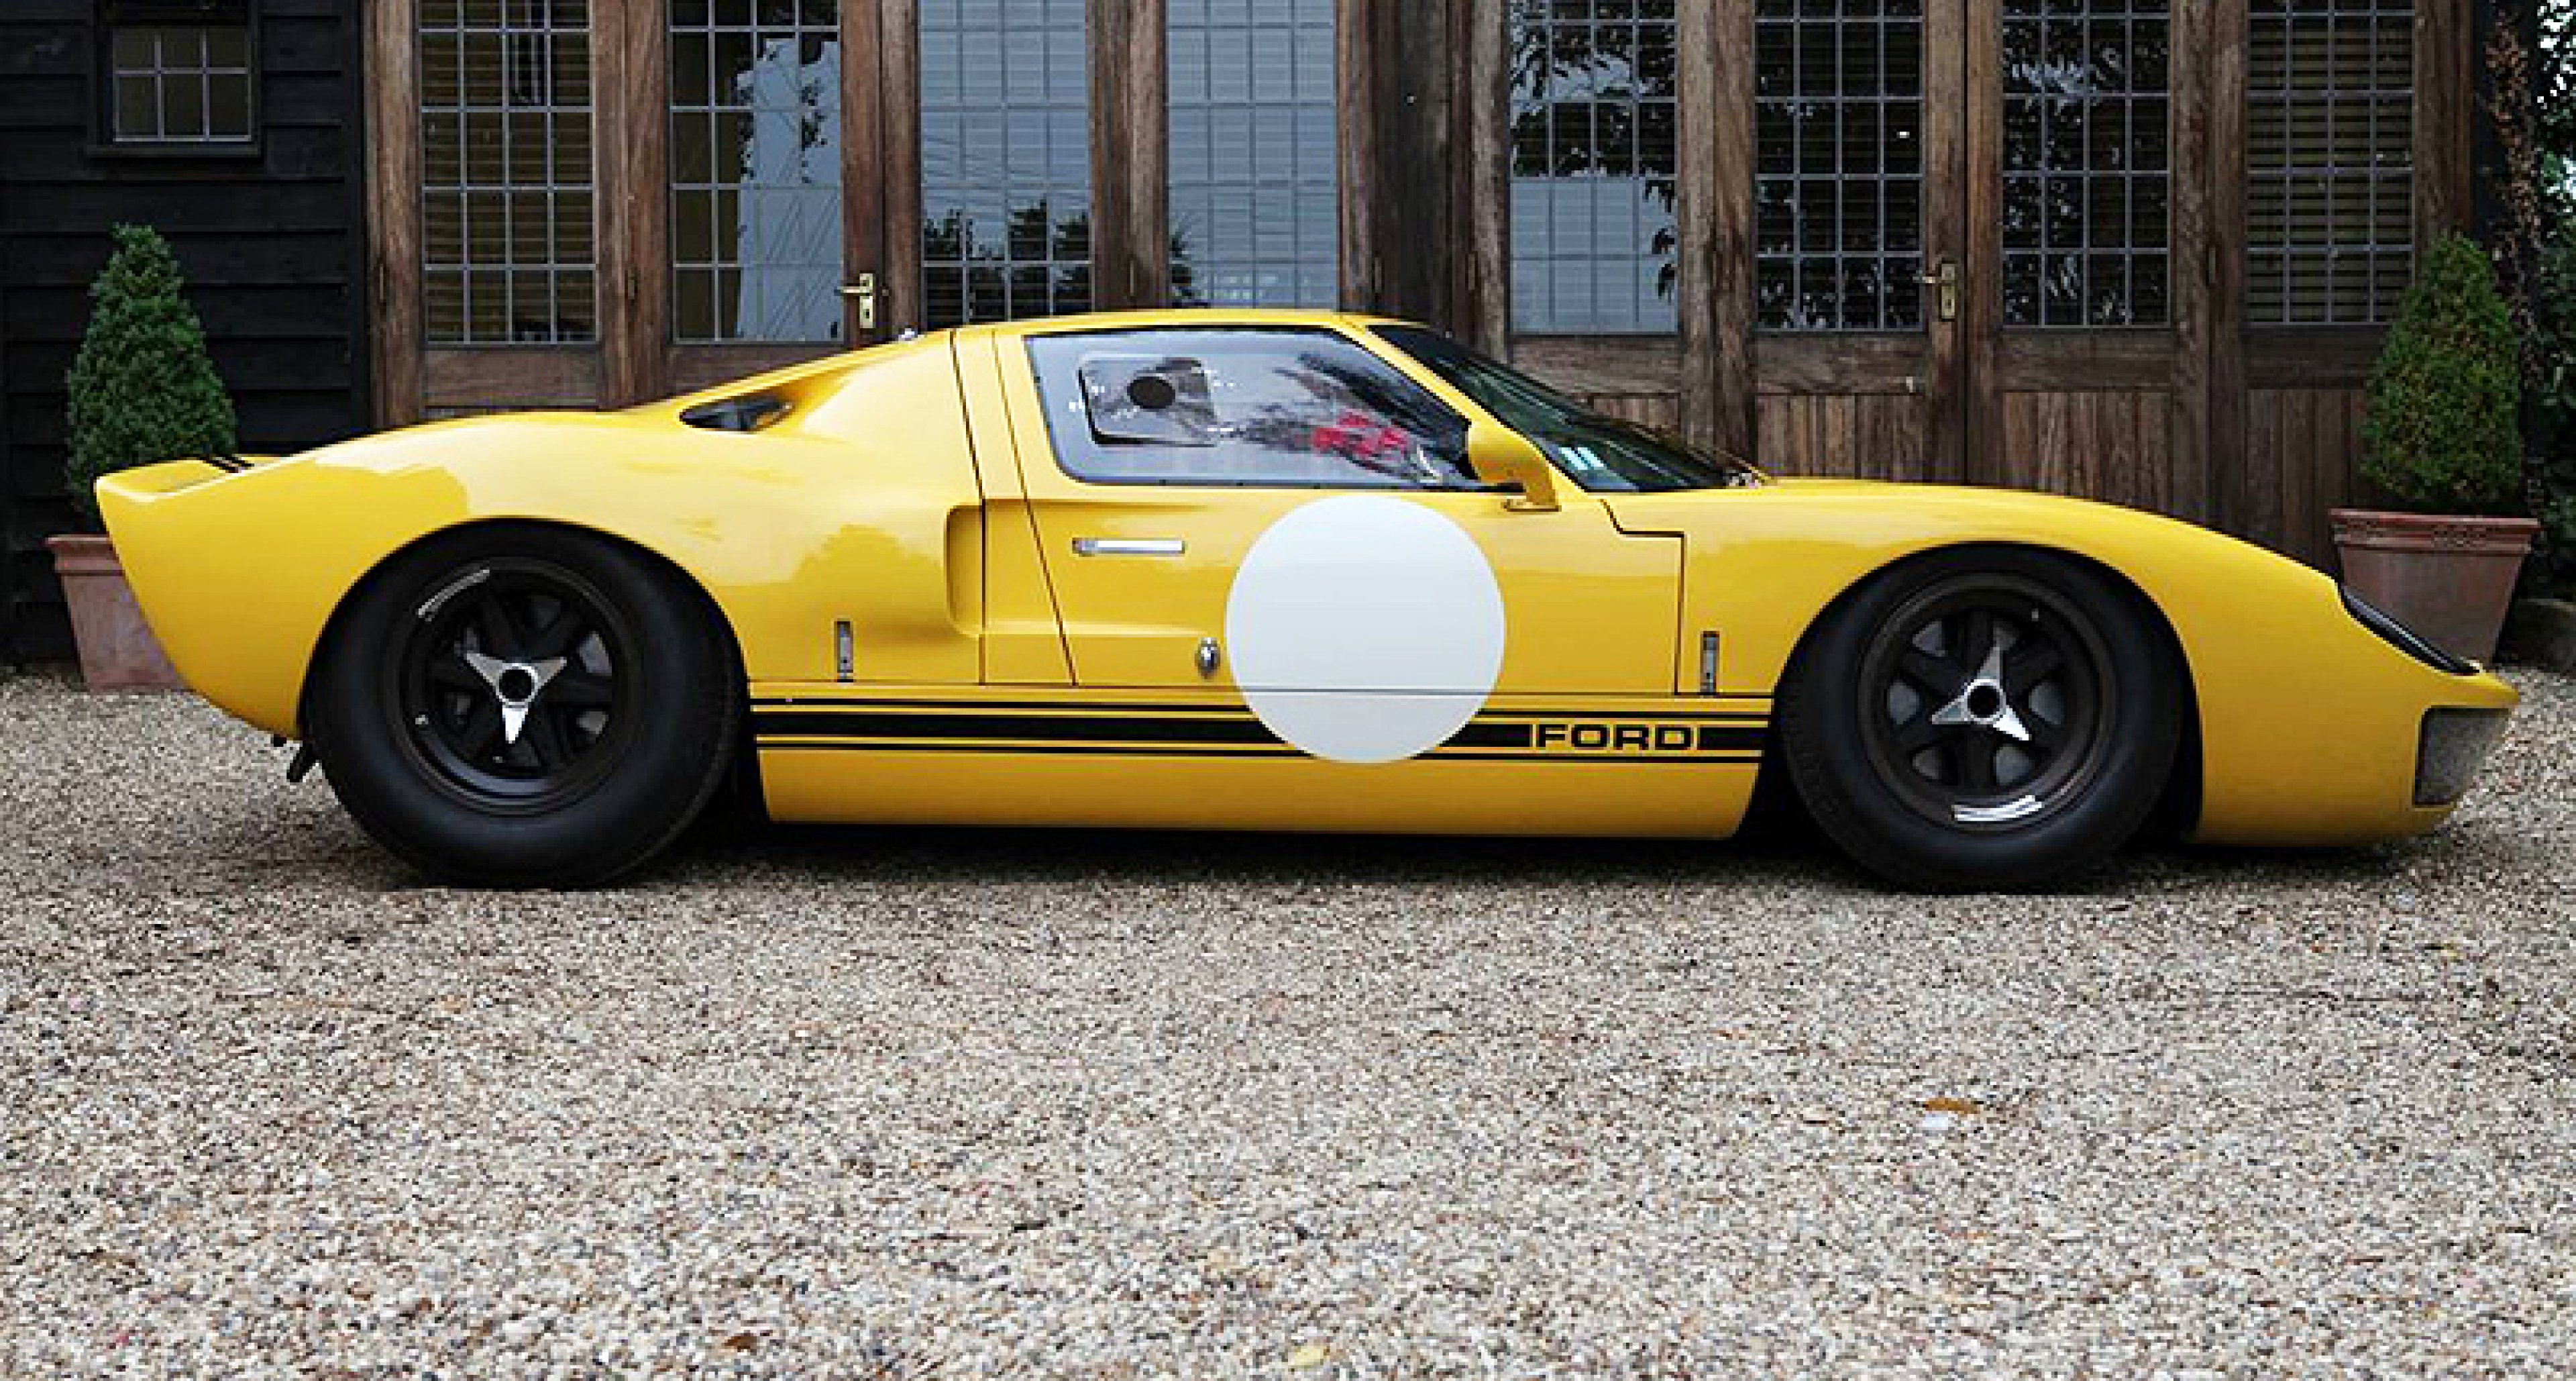 New to Classic Driver: 1965 Ford GT40, the 'Grand Prix' film camera car